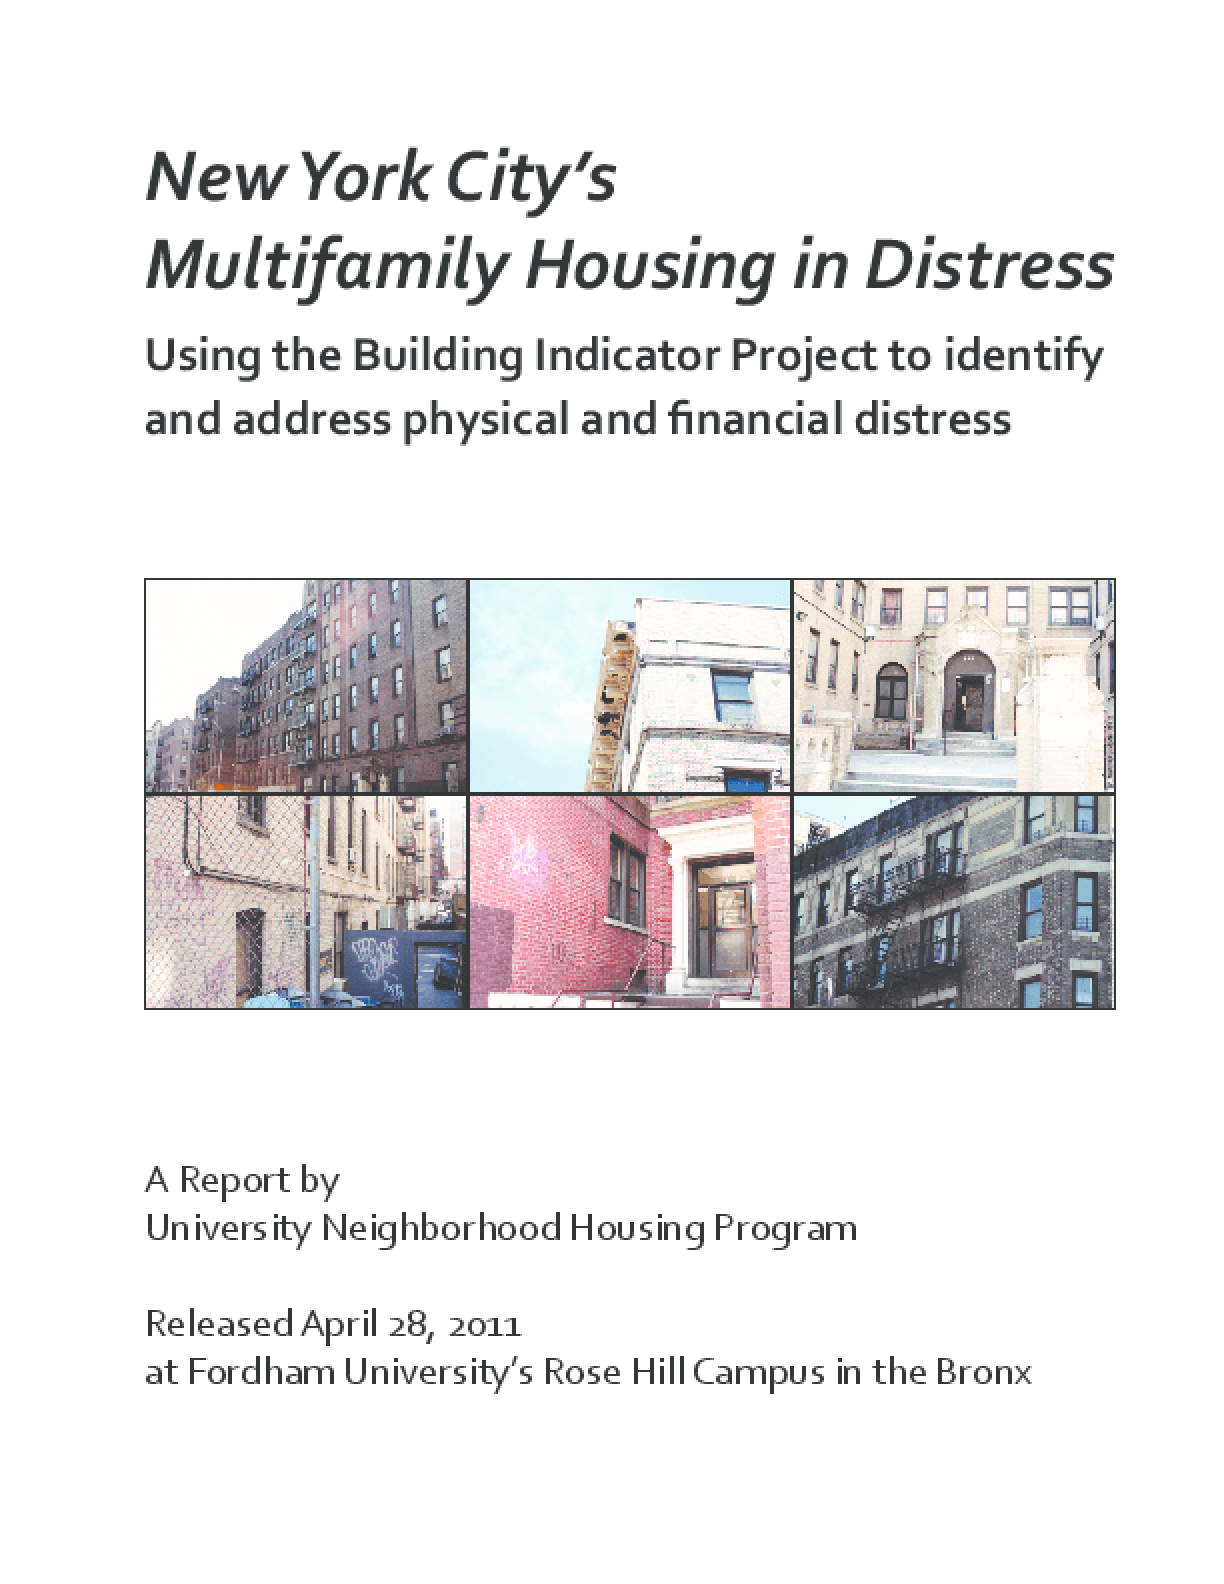 New York City's Multifamily Housing in Distress